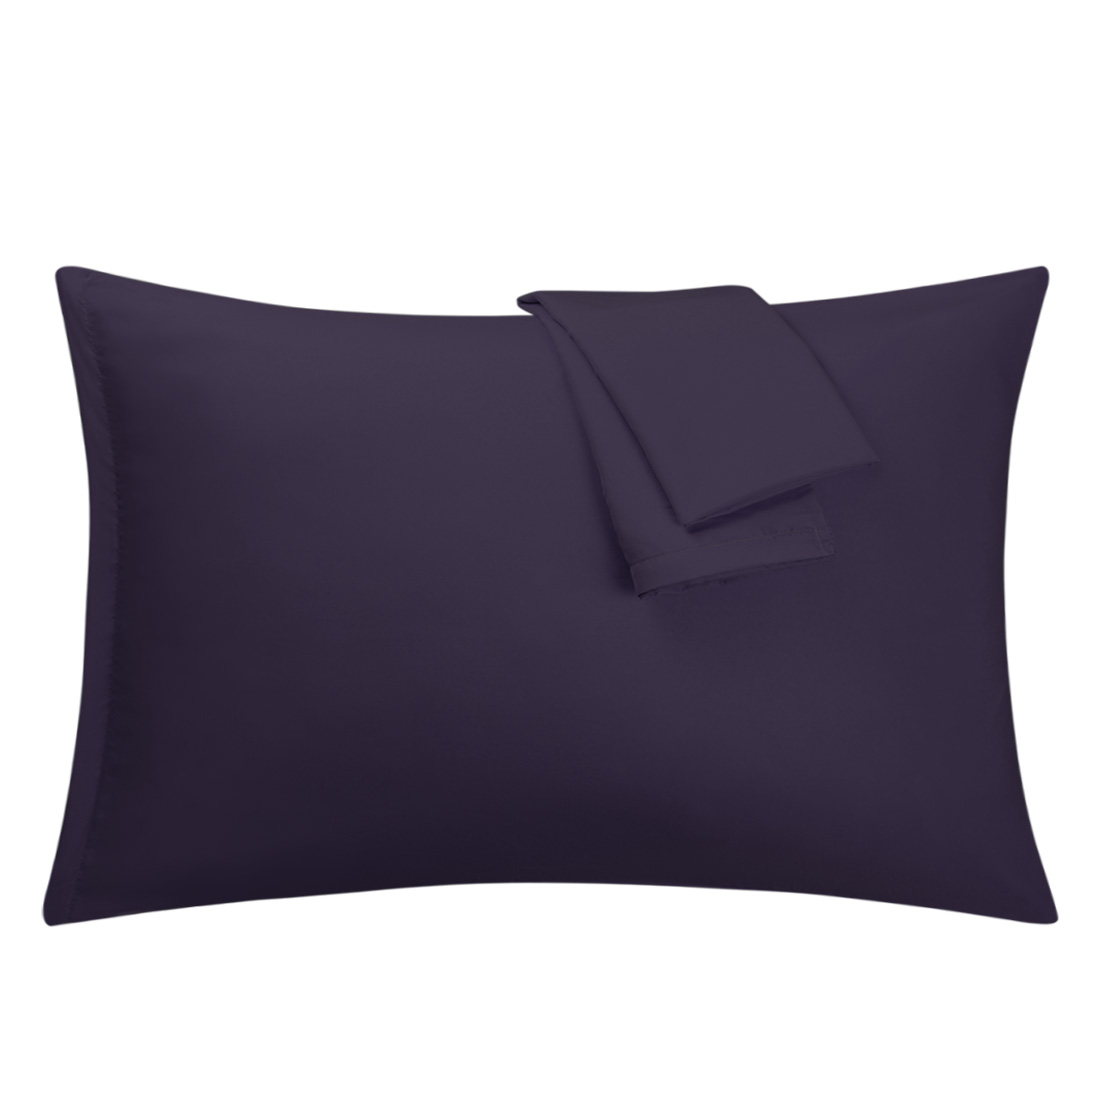 Eggplant Pillowcases Soft Microfiber Pillow Case Cover with Zipper Queen, 2 Pack